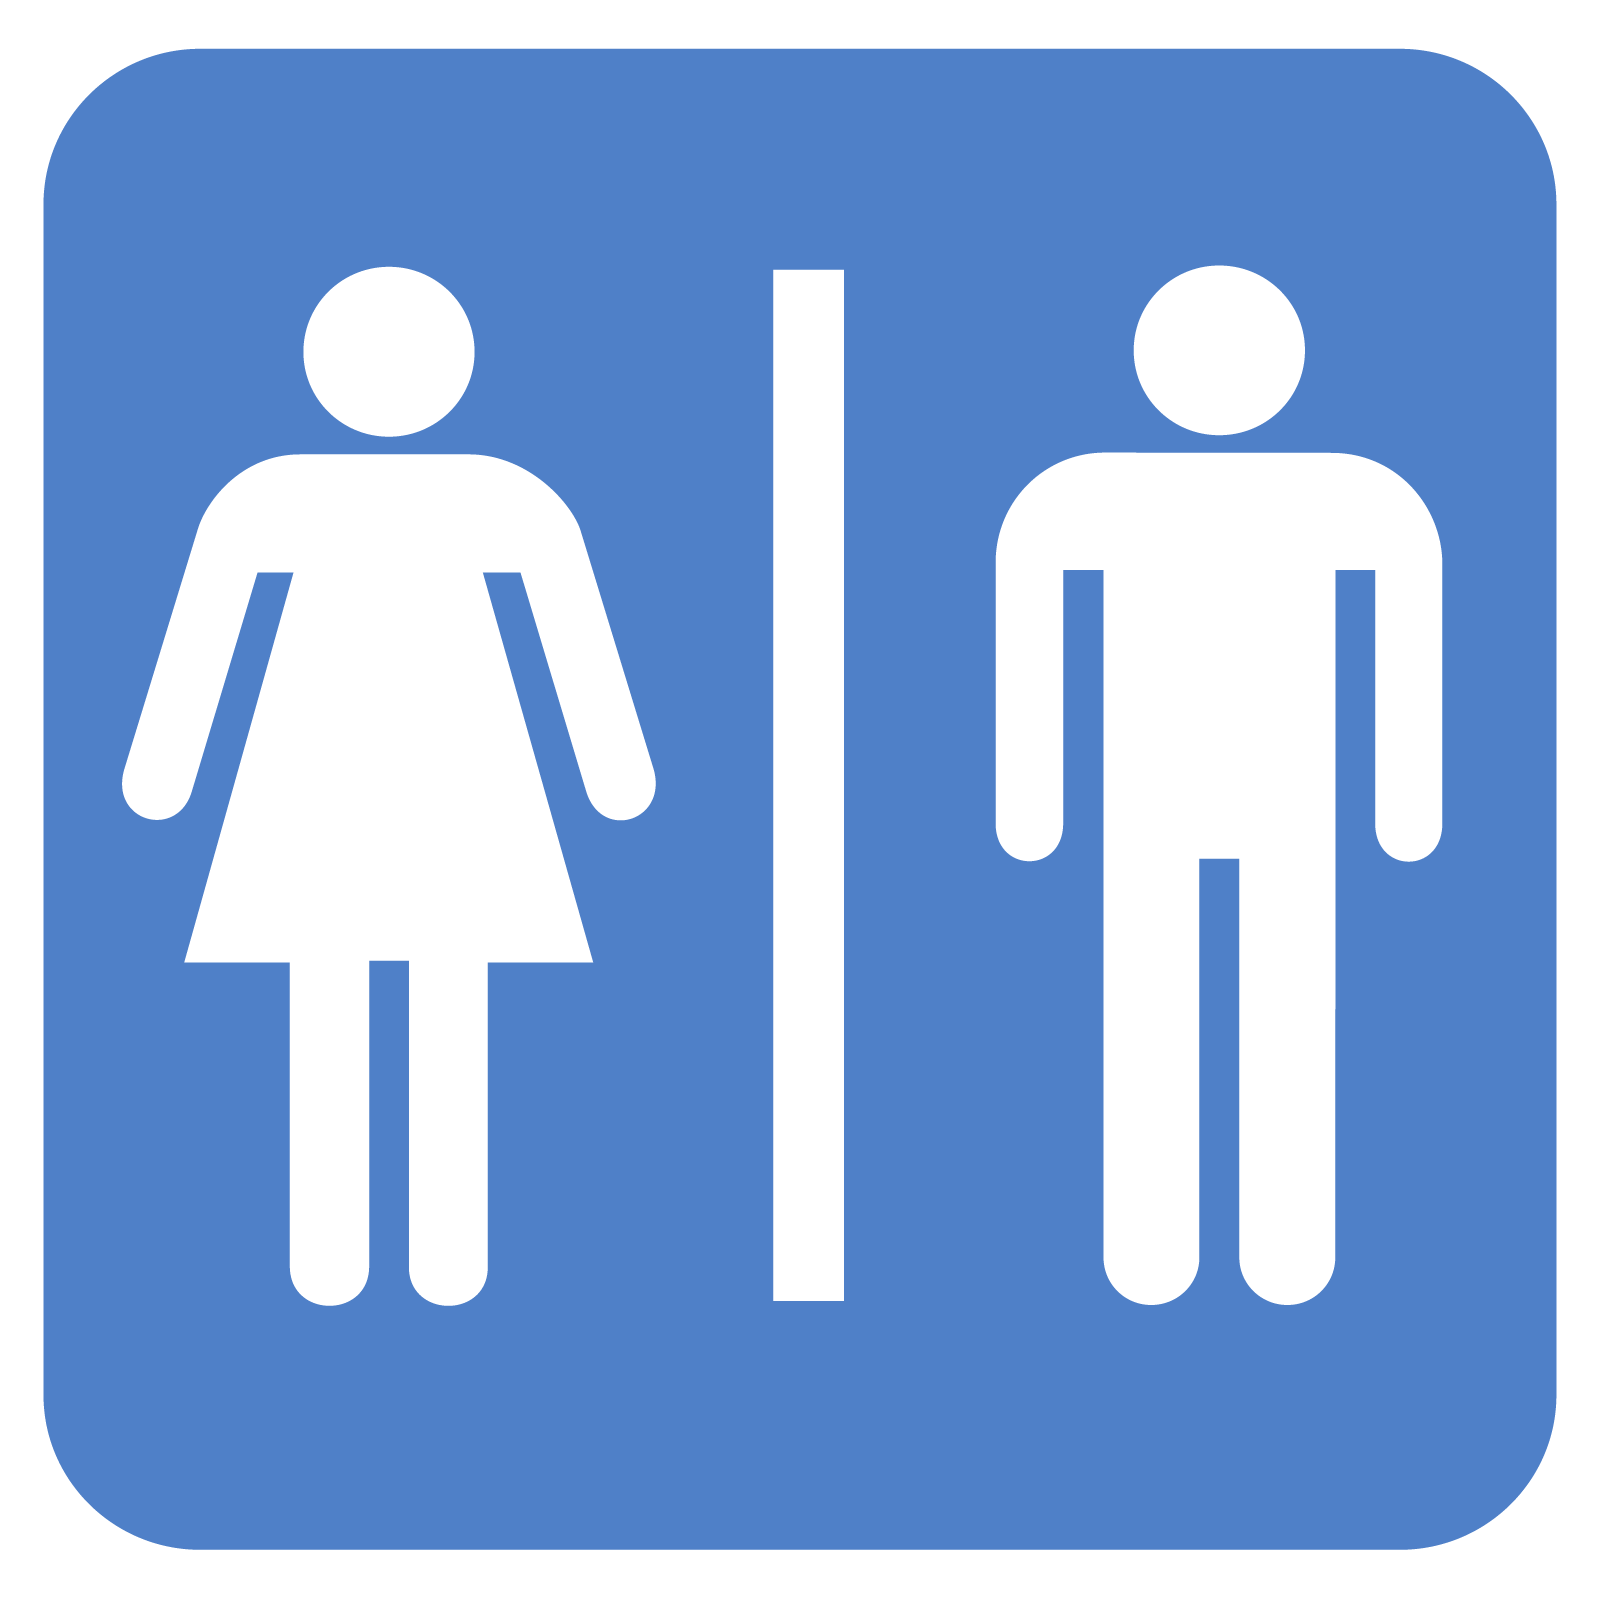 Bathroom Signs English And Spanish file:bathroom-gender-sign - wikimedia commons